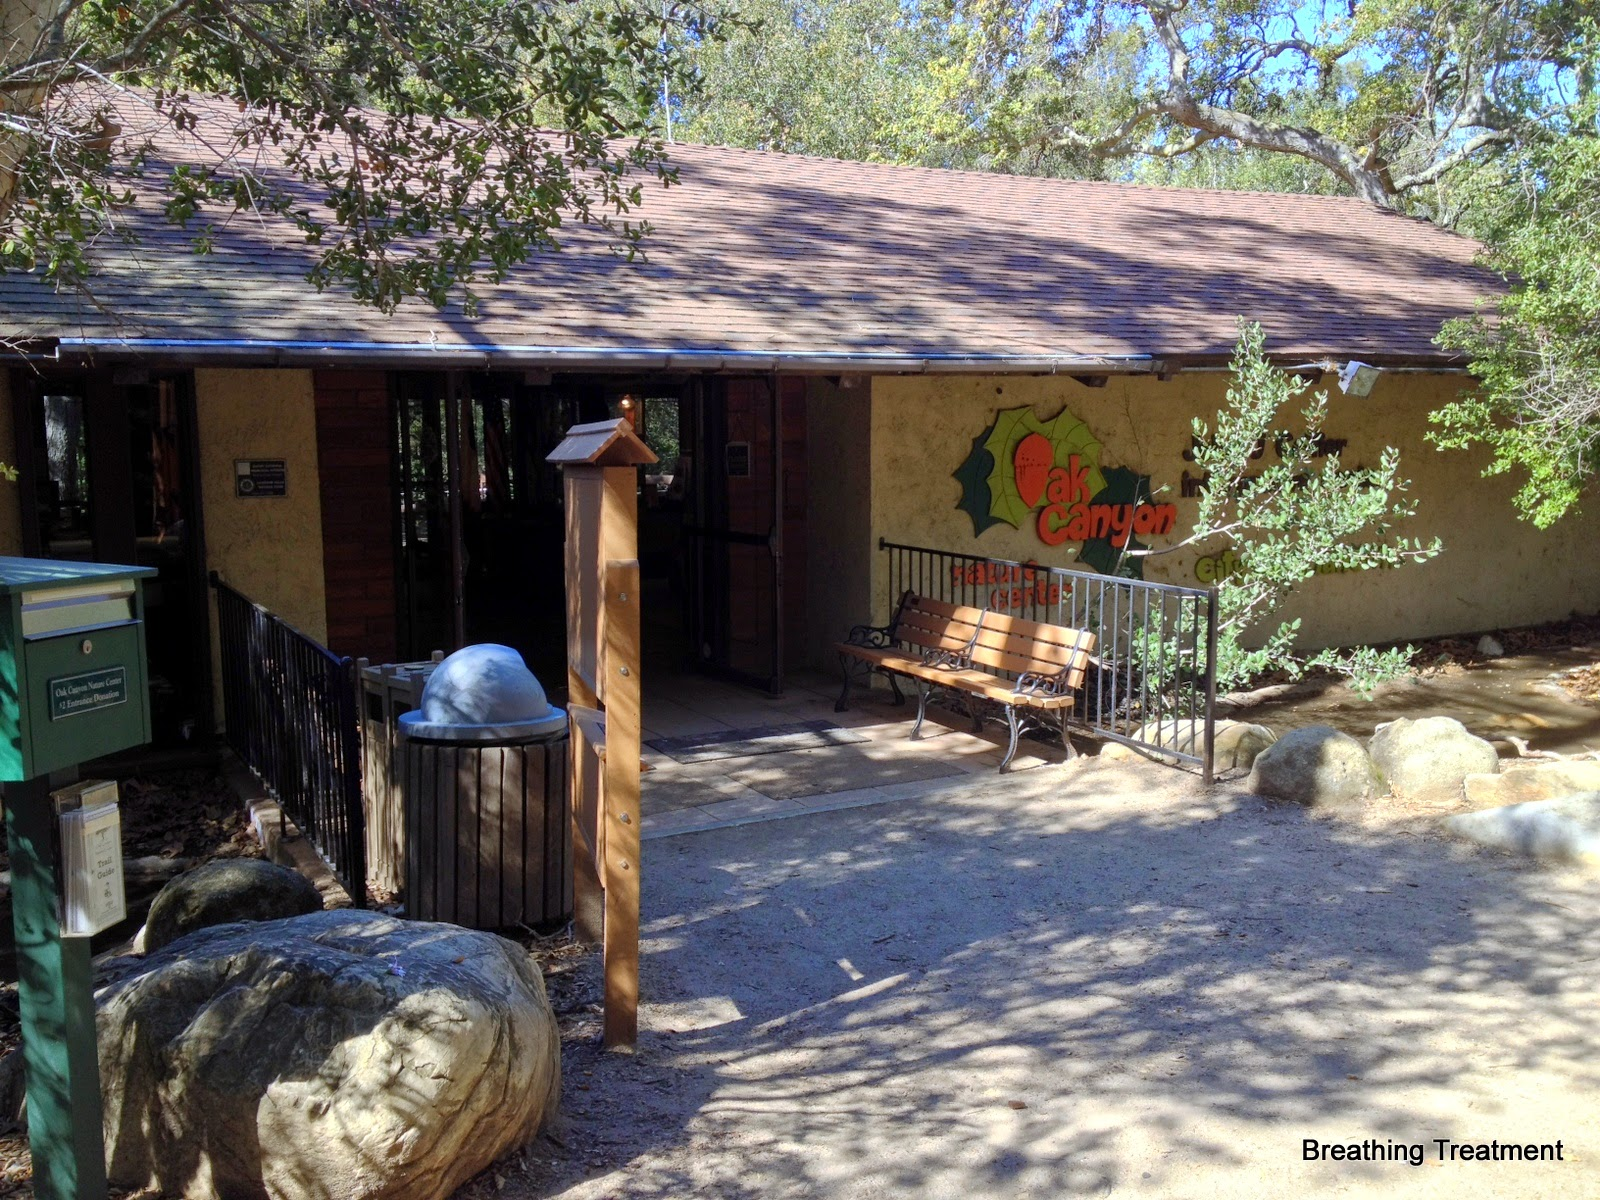 Oak Canyon Nature Center